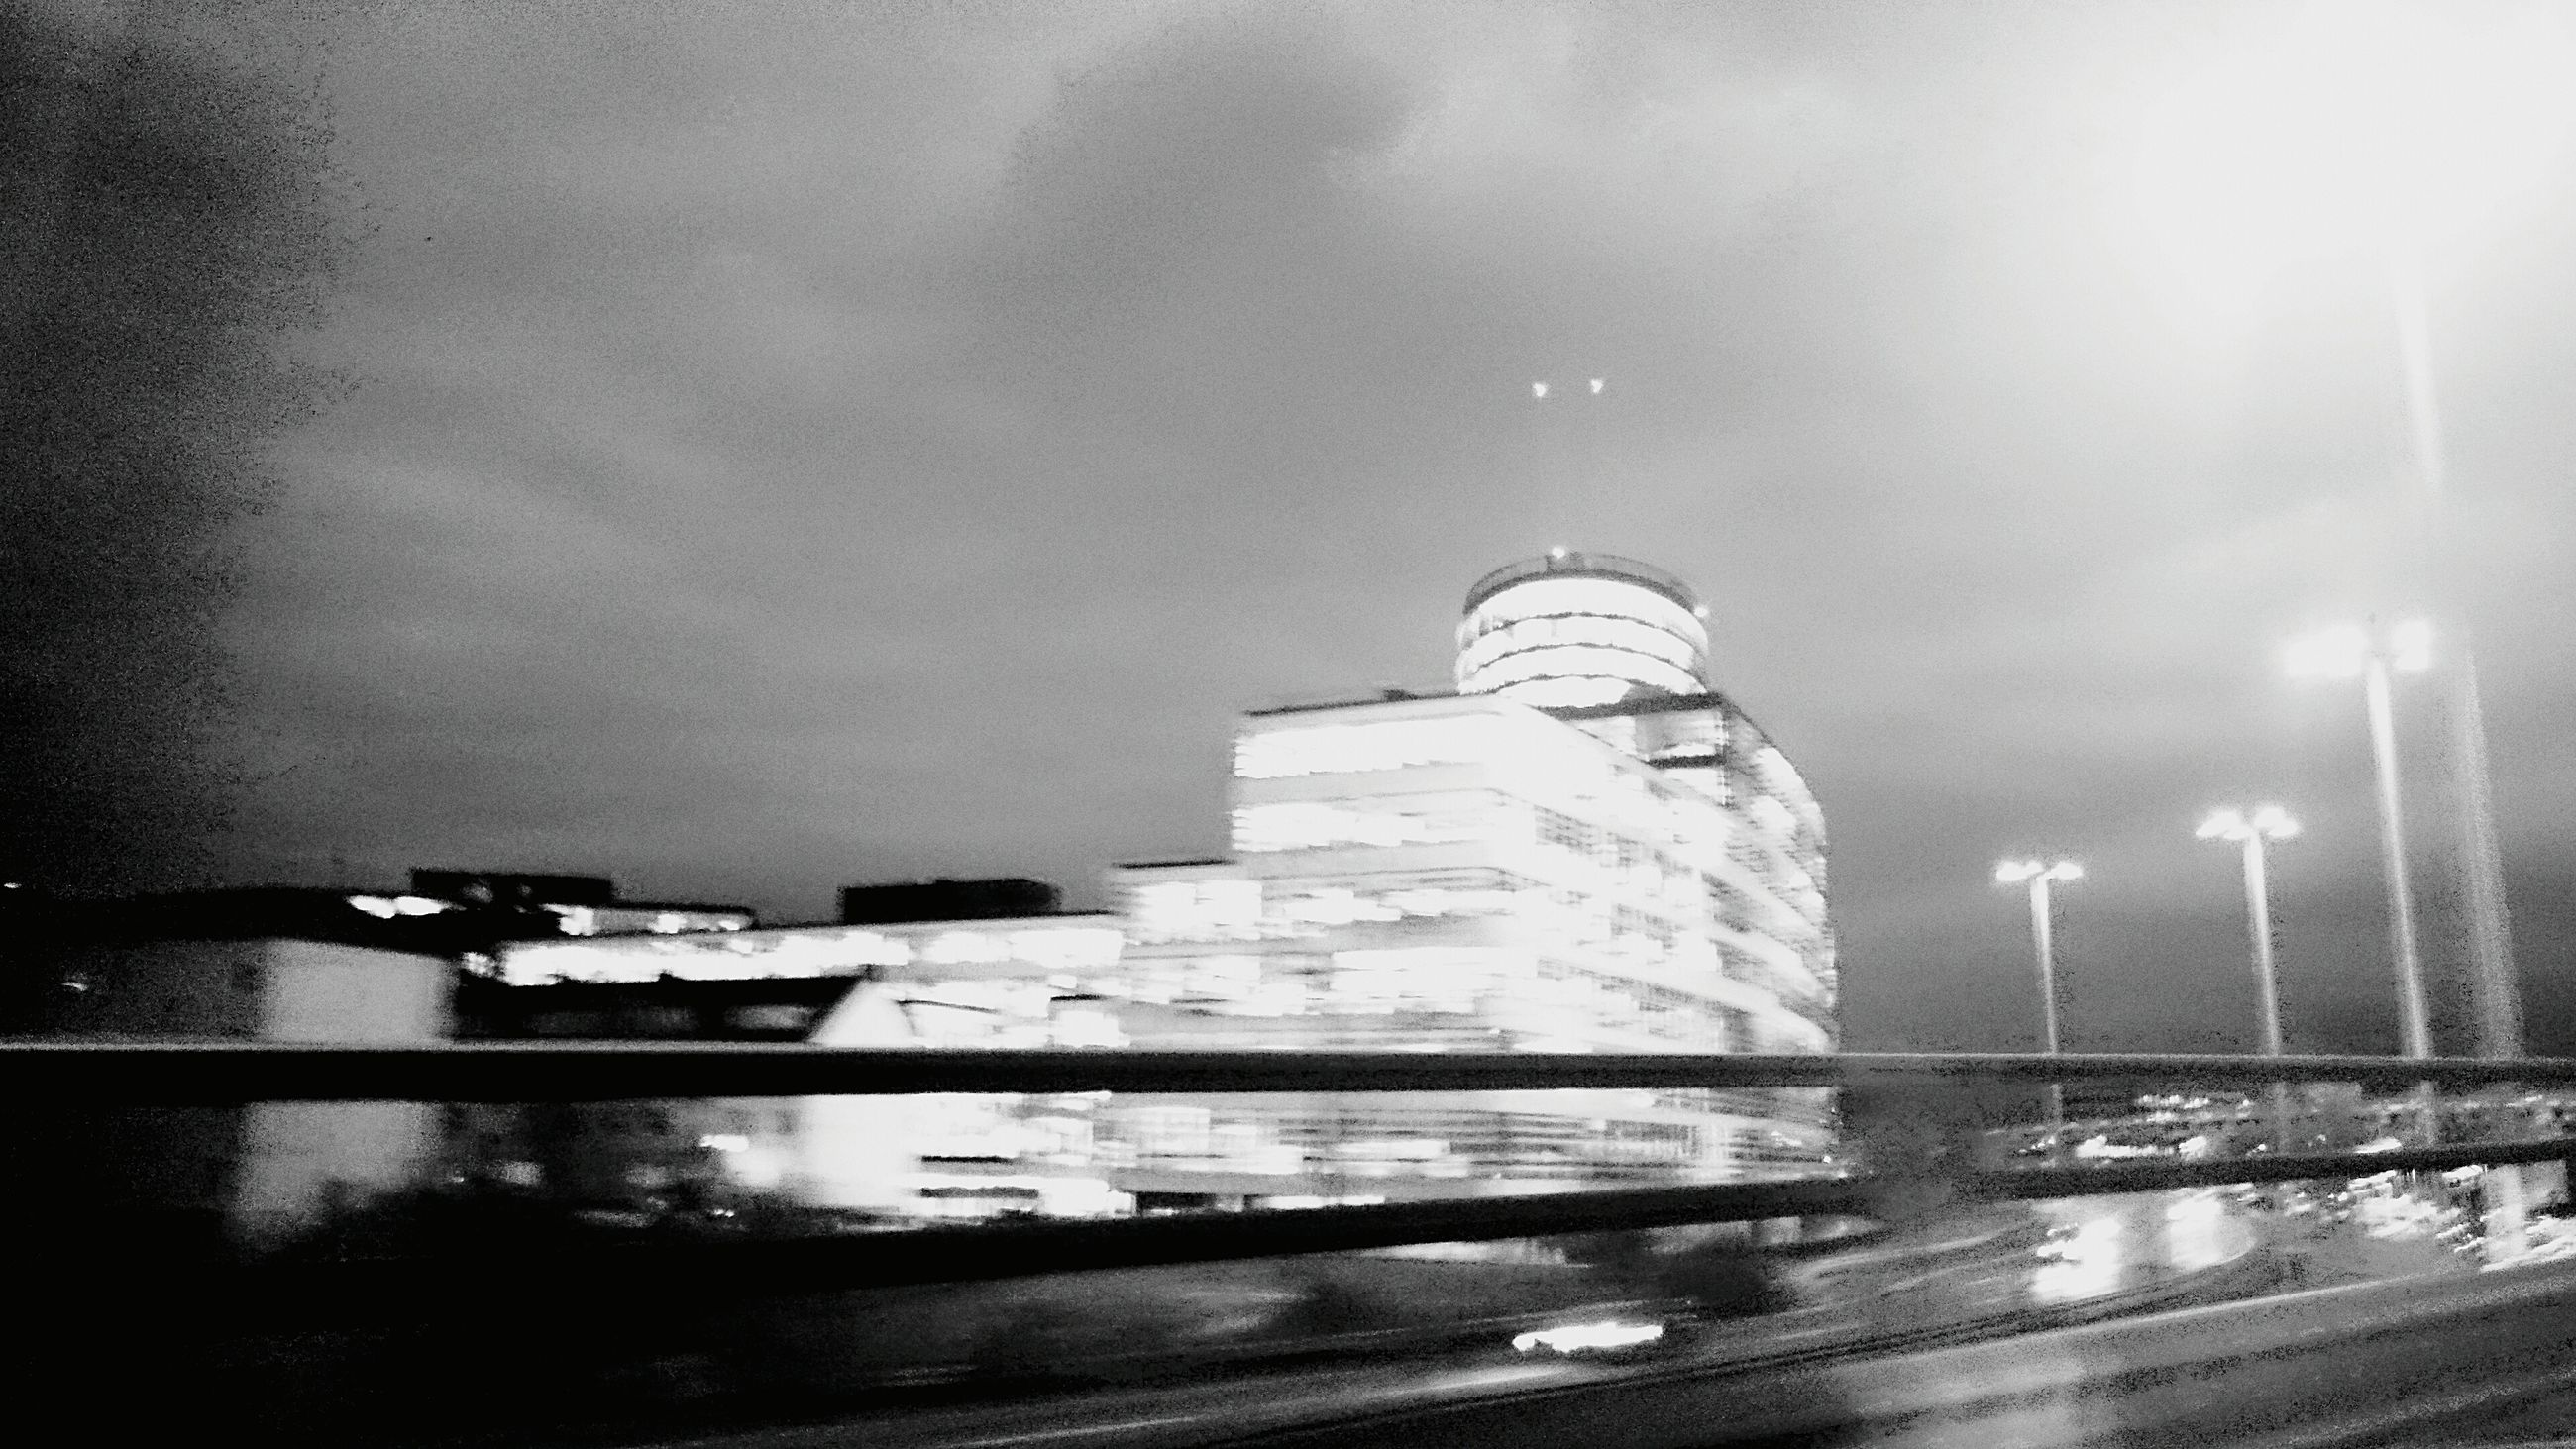 water, building exterior, sky, built structure, architecture, weather, transportation, night, mode of transport, car, wet, reflection, rain, street, city, outdoors, road, no people, land vehicle